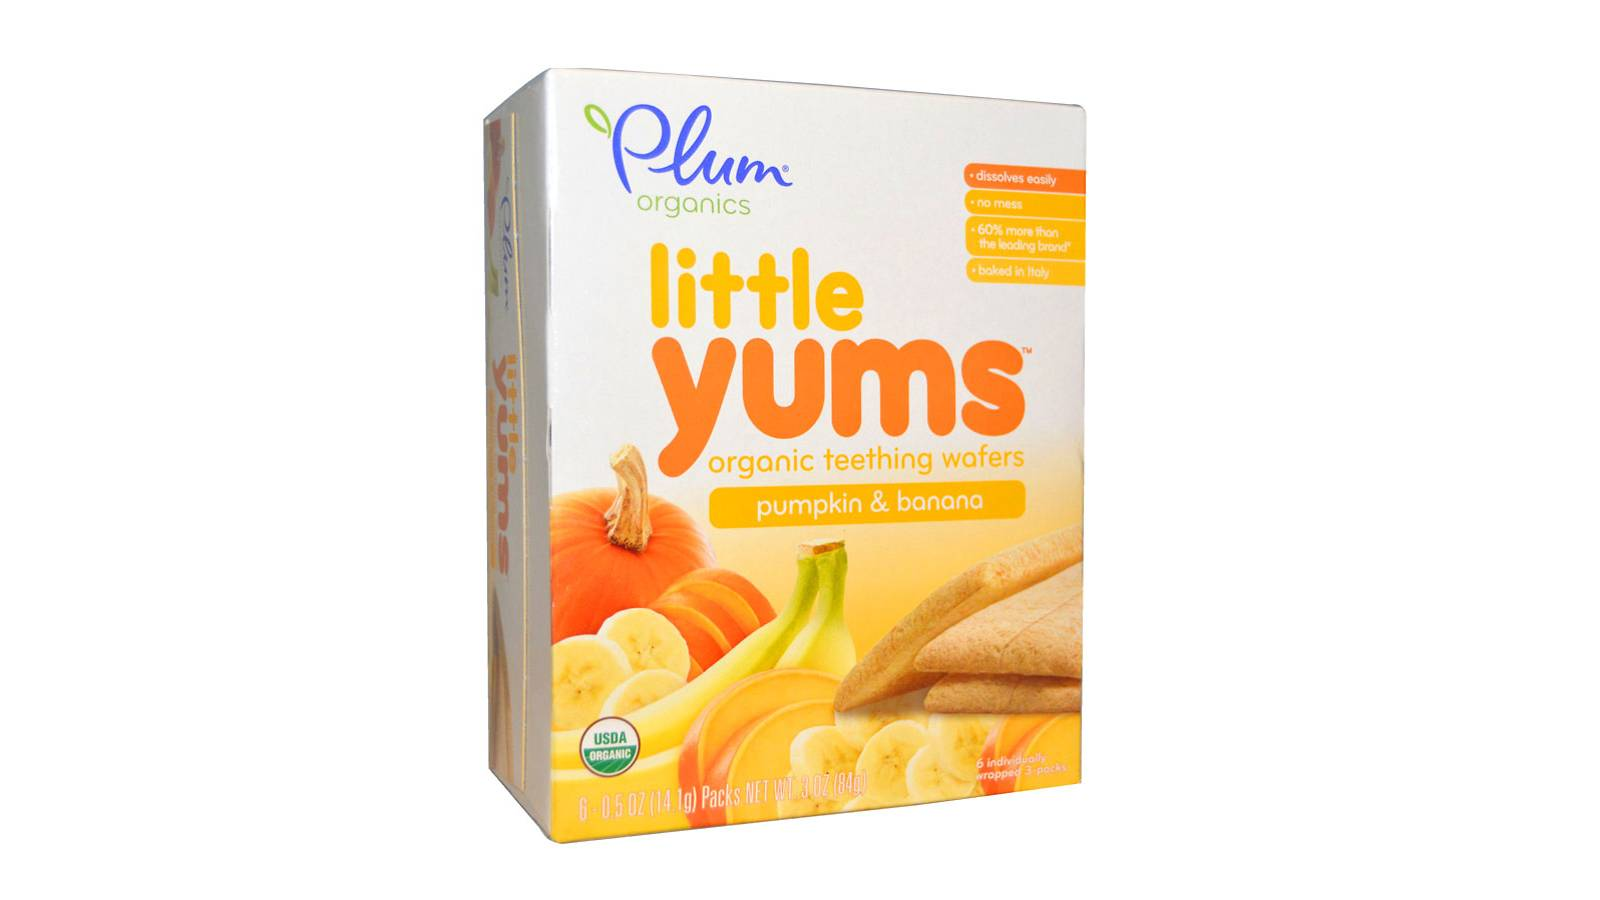 BUYER'S-GUIDE-8-Best-baby-snacks-PLUM-ORGANICS-WAFERS